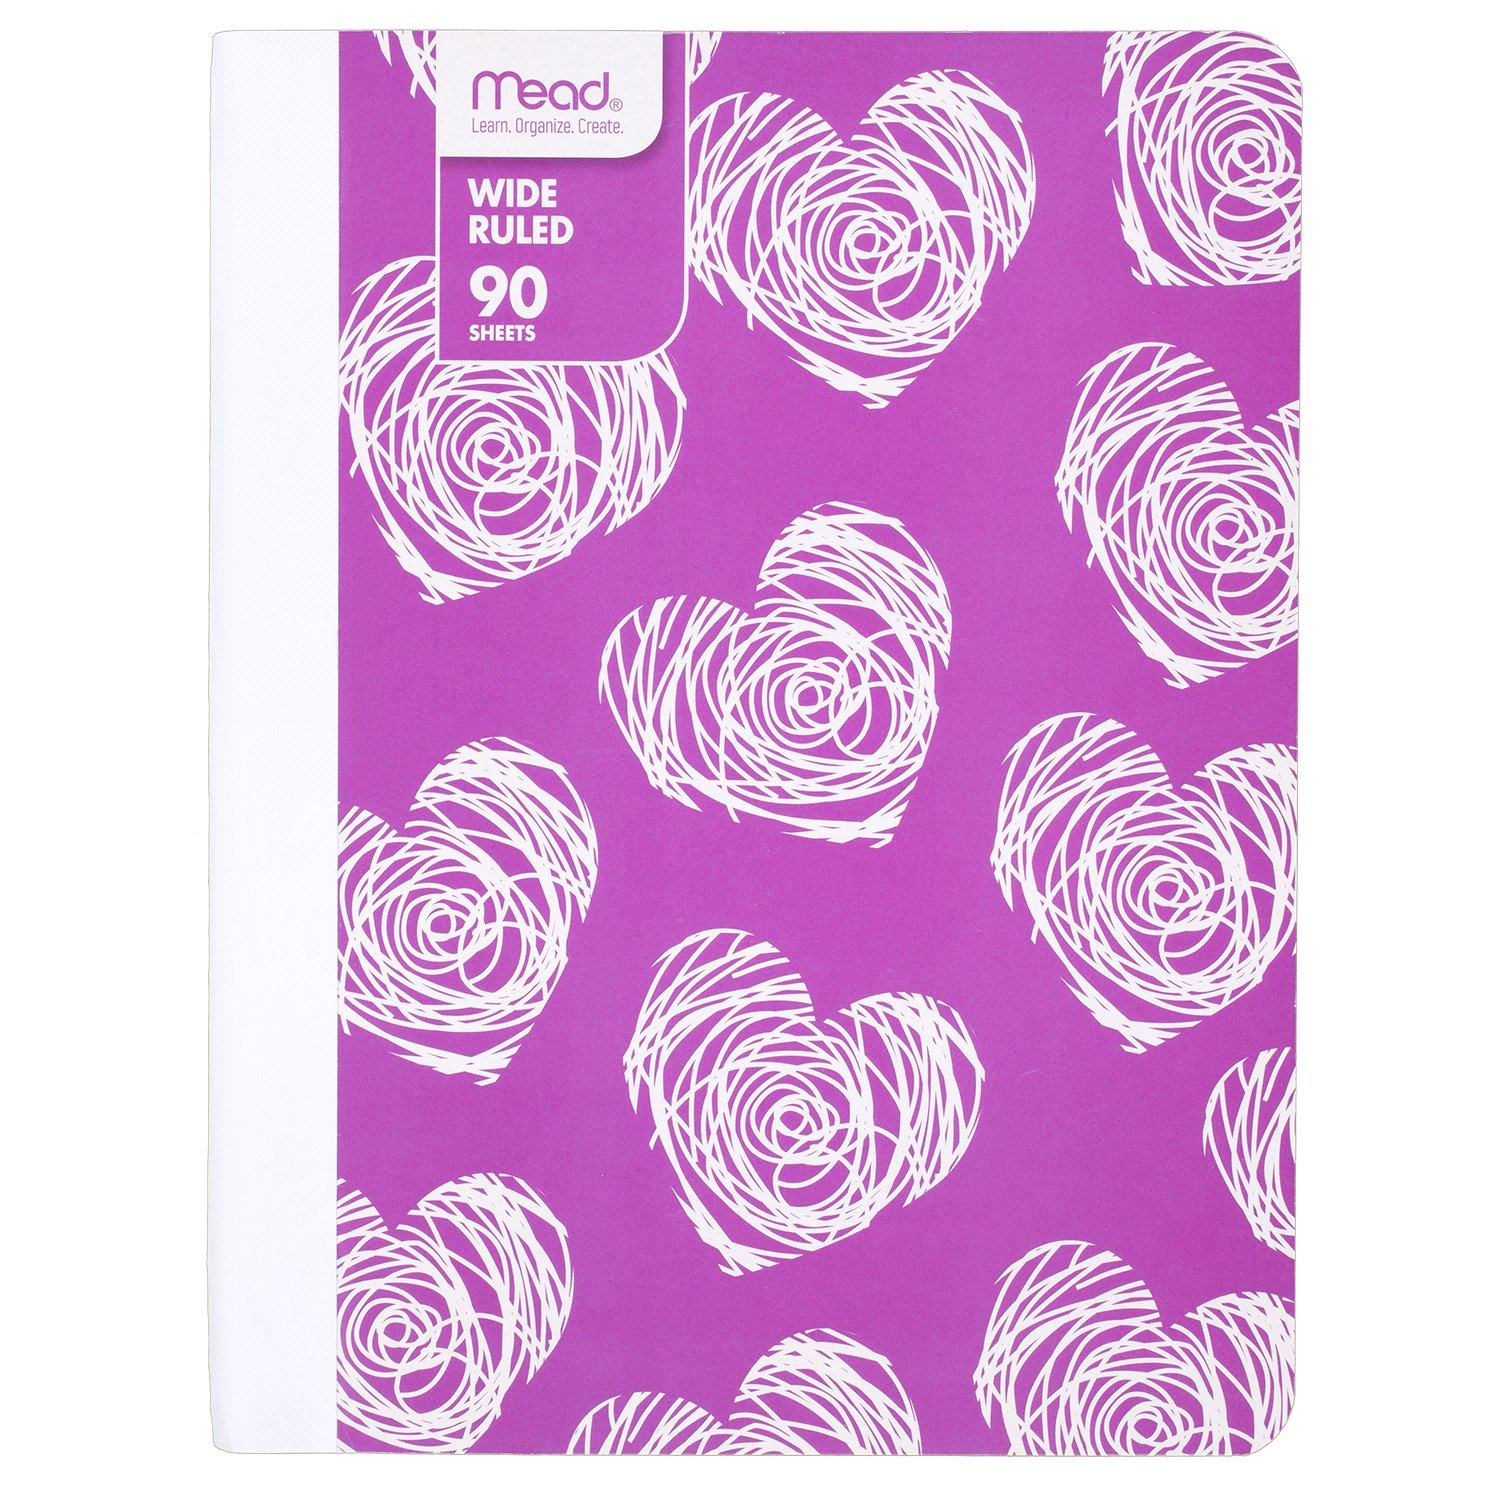 Mead 2 Pocket Folders 12 Pack 38226 Assorted Designs Folders with Pockets